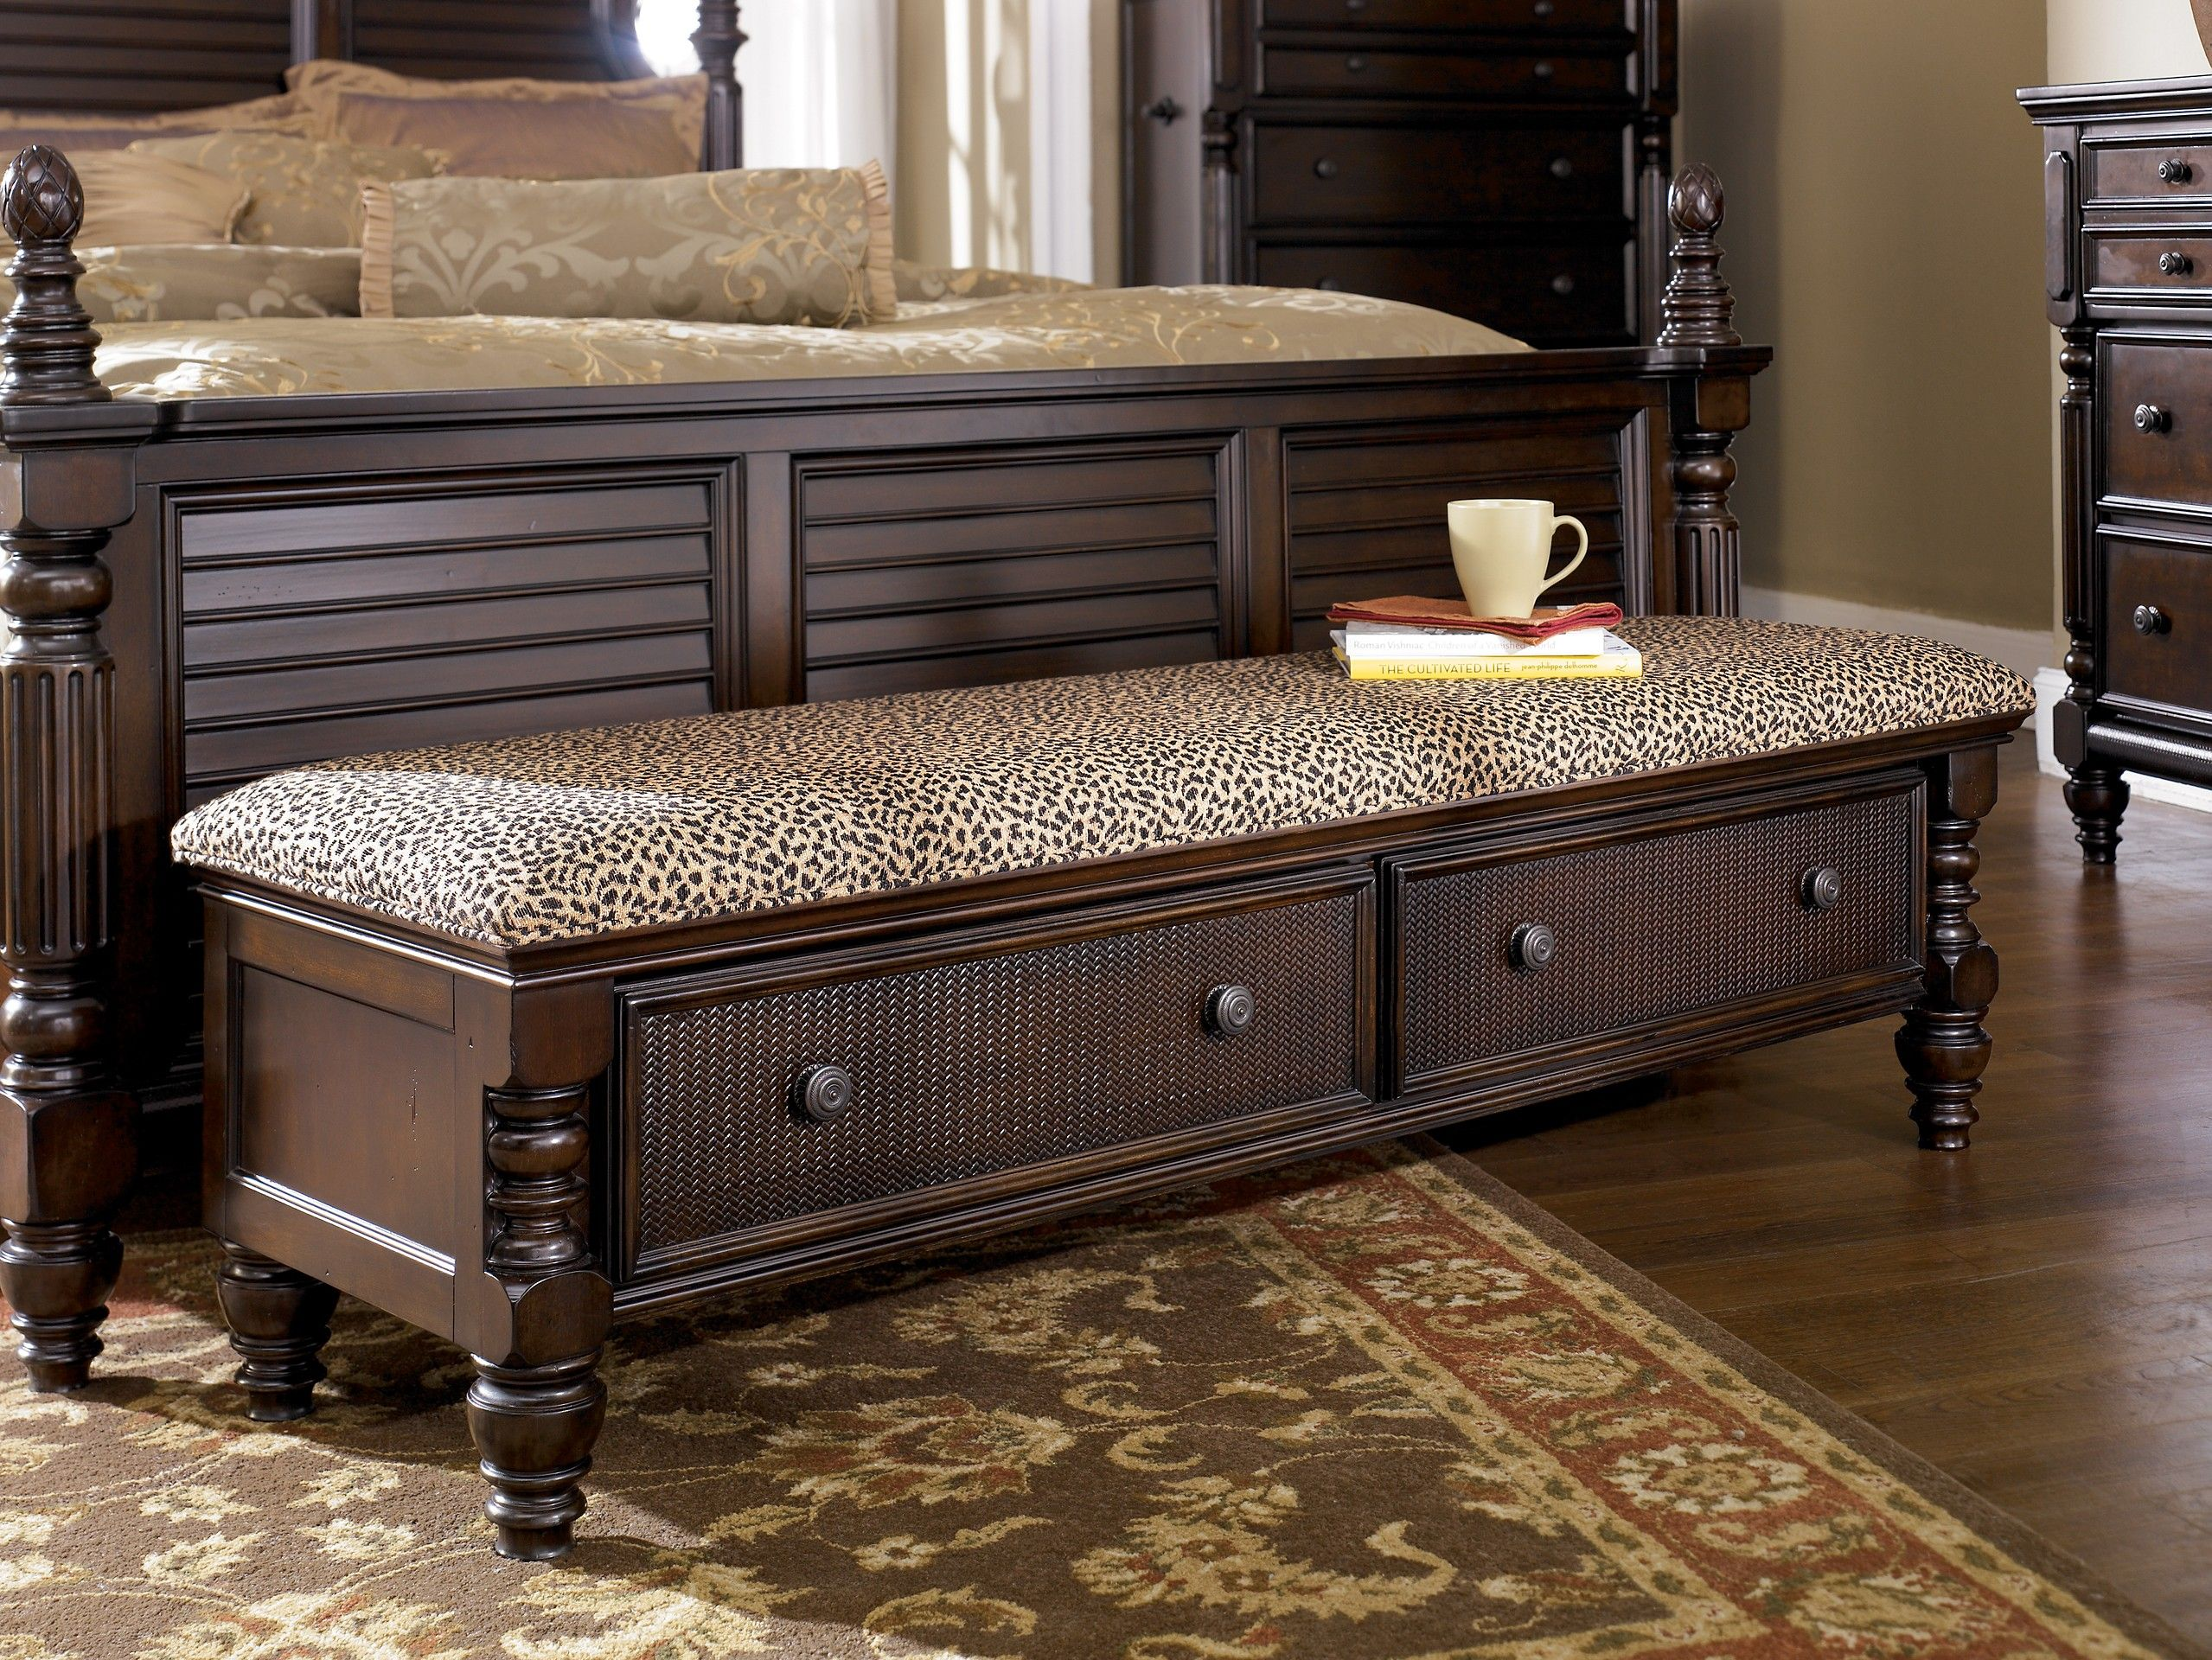 Delightful Ashley Key Town Millennium Dark Brown Bedroom Storage Bench   With Its  Sophisticated Beauty, Ornate Details And Classic Lines, The Key Town  Collection By ... Amazing Pictures